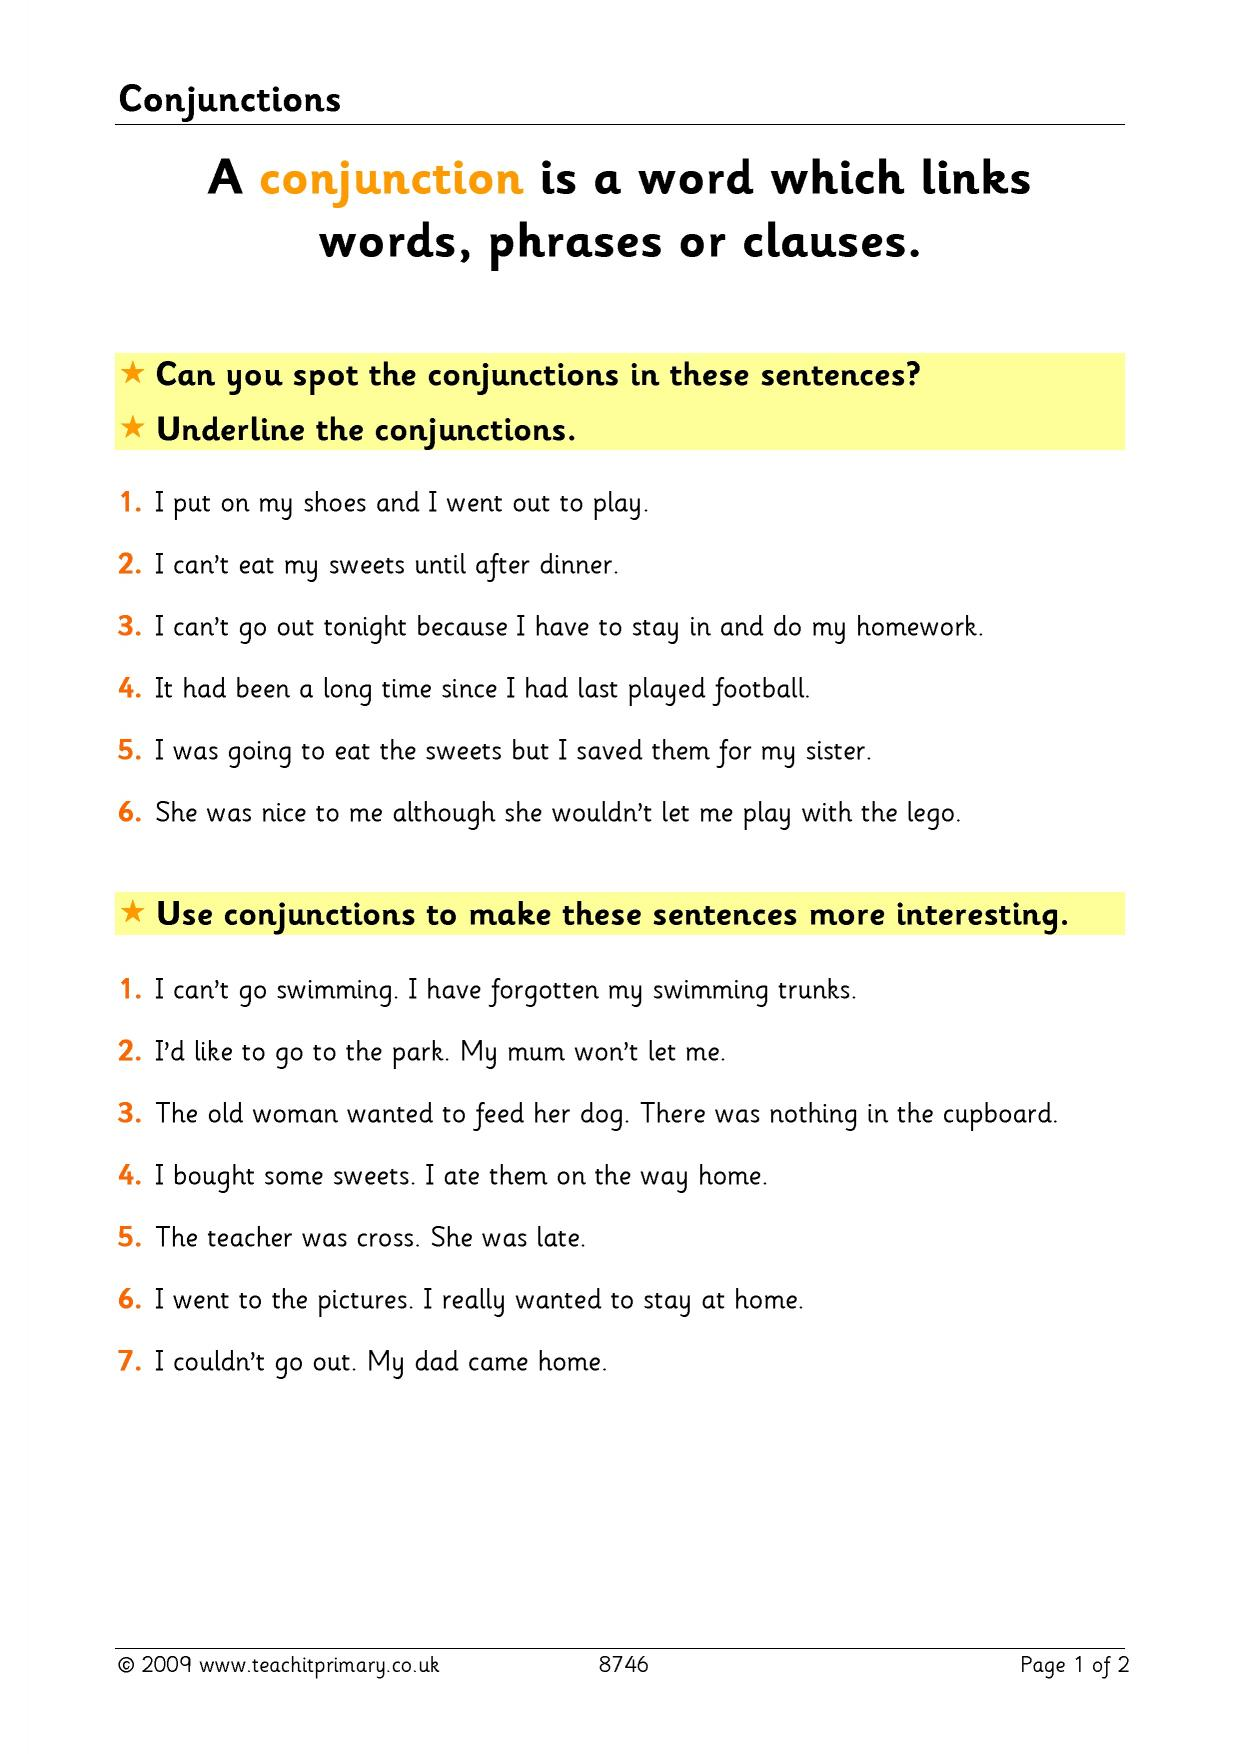 Teaching Conjunctions: A Lesson Plan on How to Teach ...